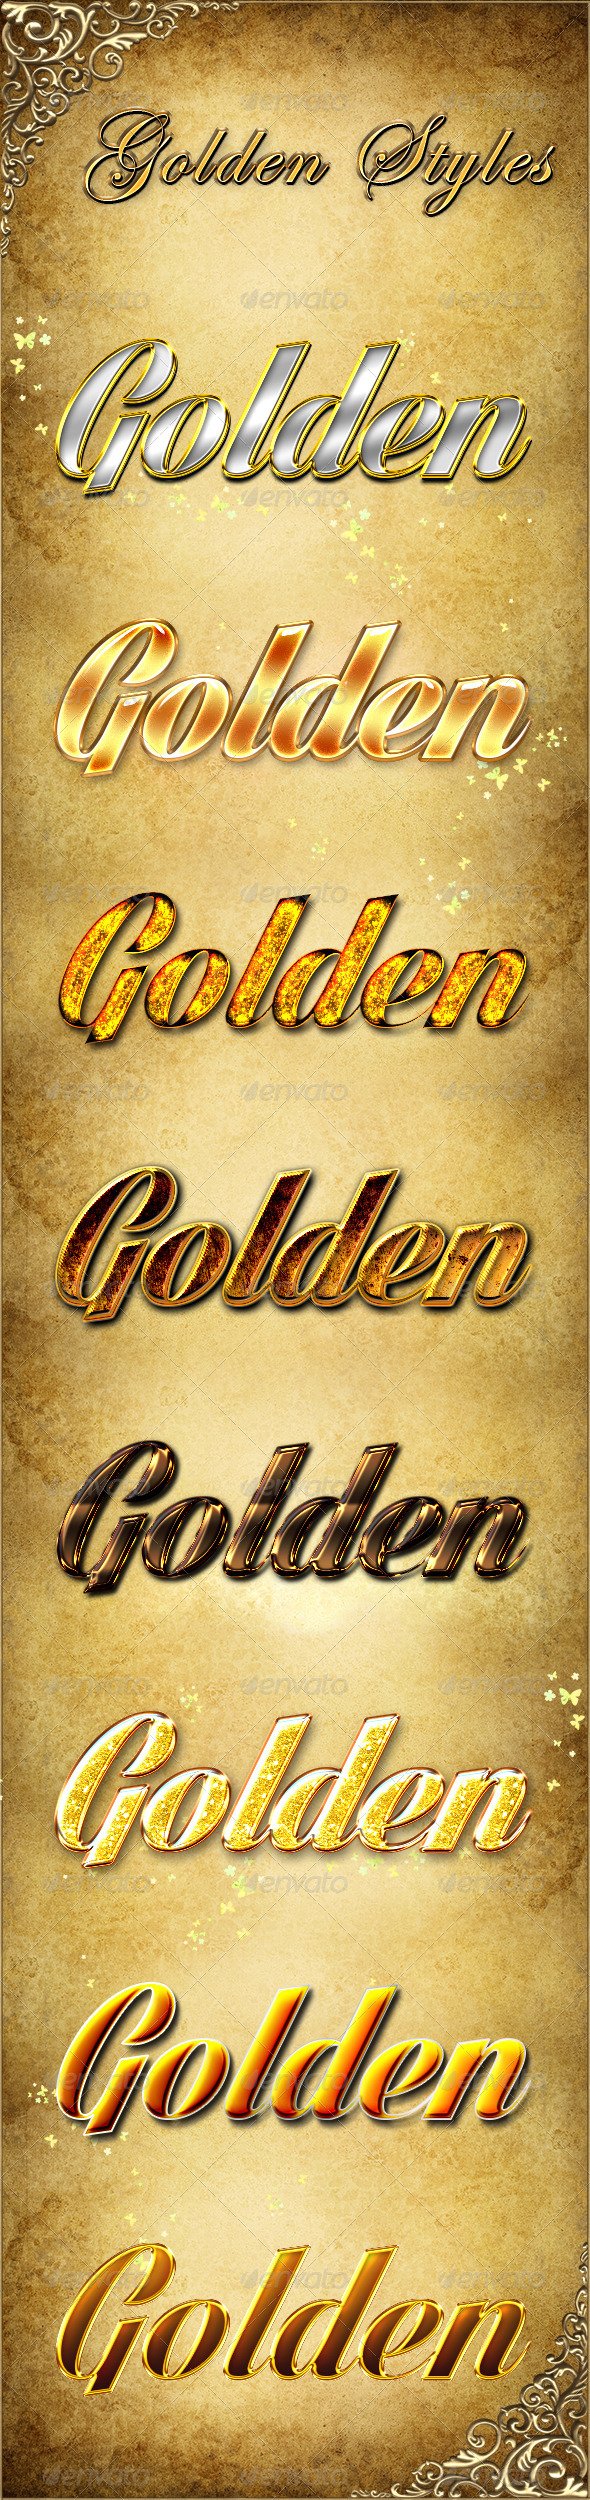 GraphicRiver Golden Styles 4918616